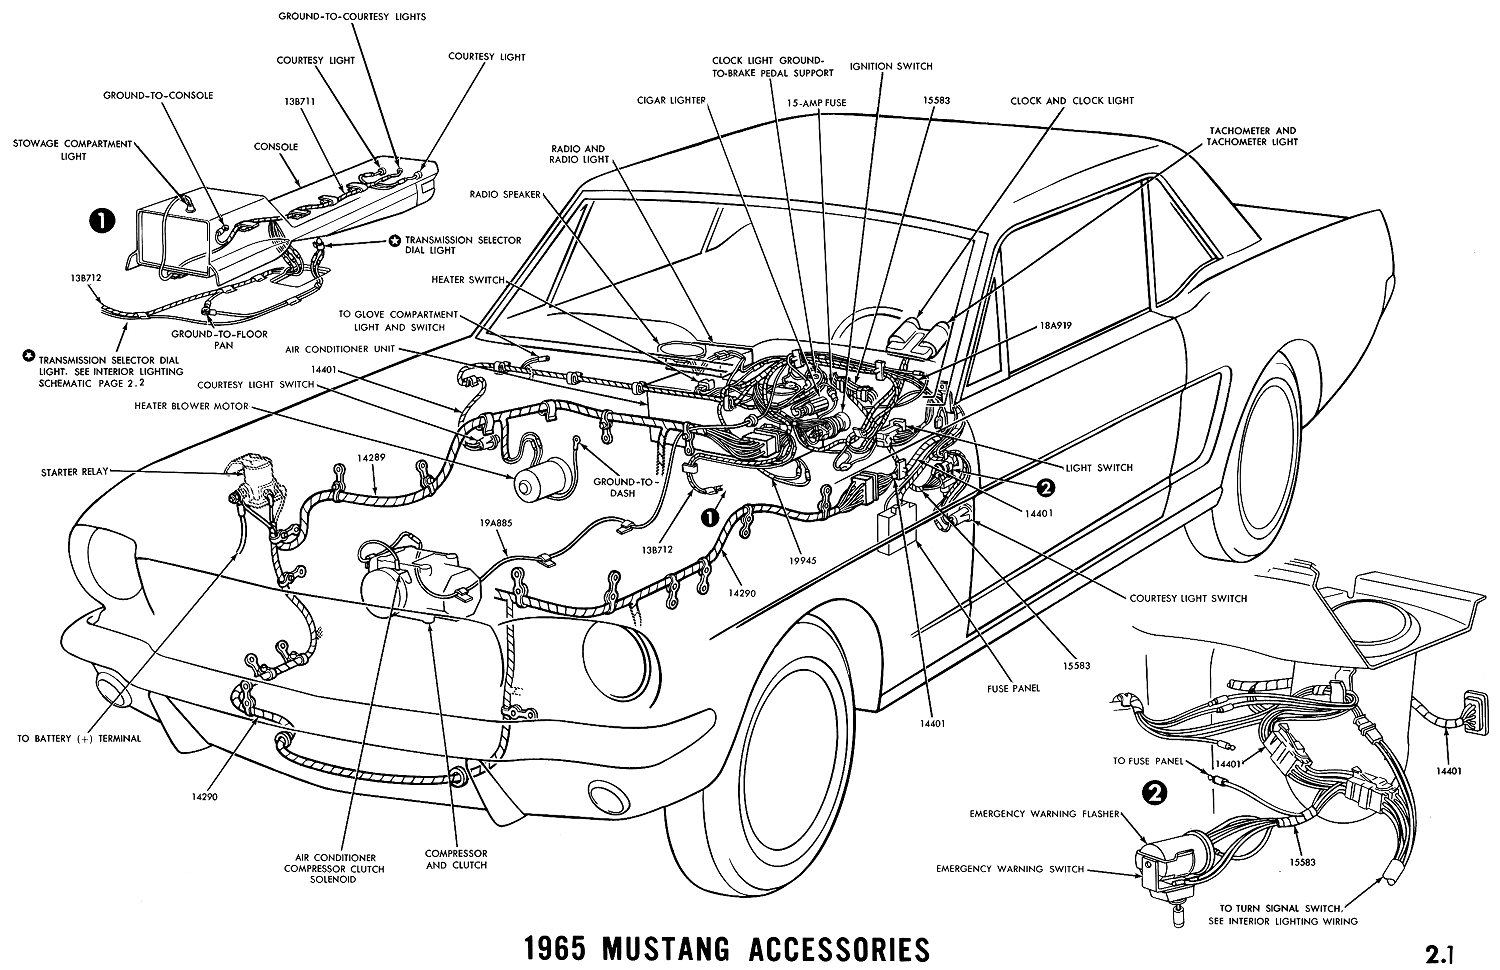 1965 Mustang Wiring Diagrams Average Joe Restoration Pontiac Alternator Diagram Accessories Pictorial Or Schematic